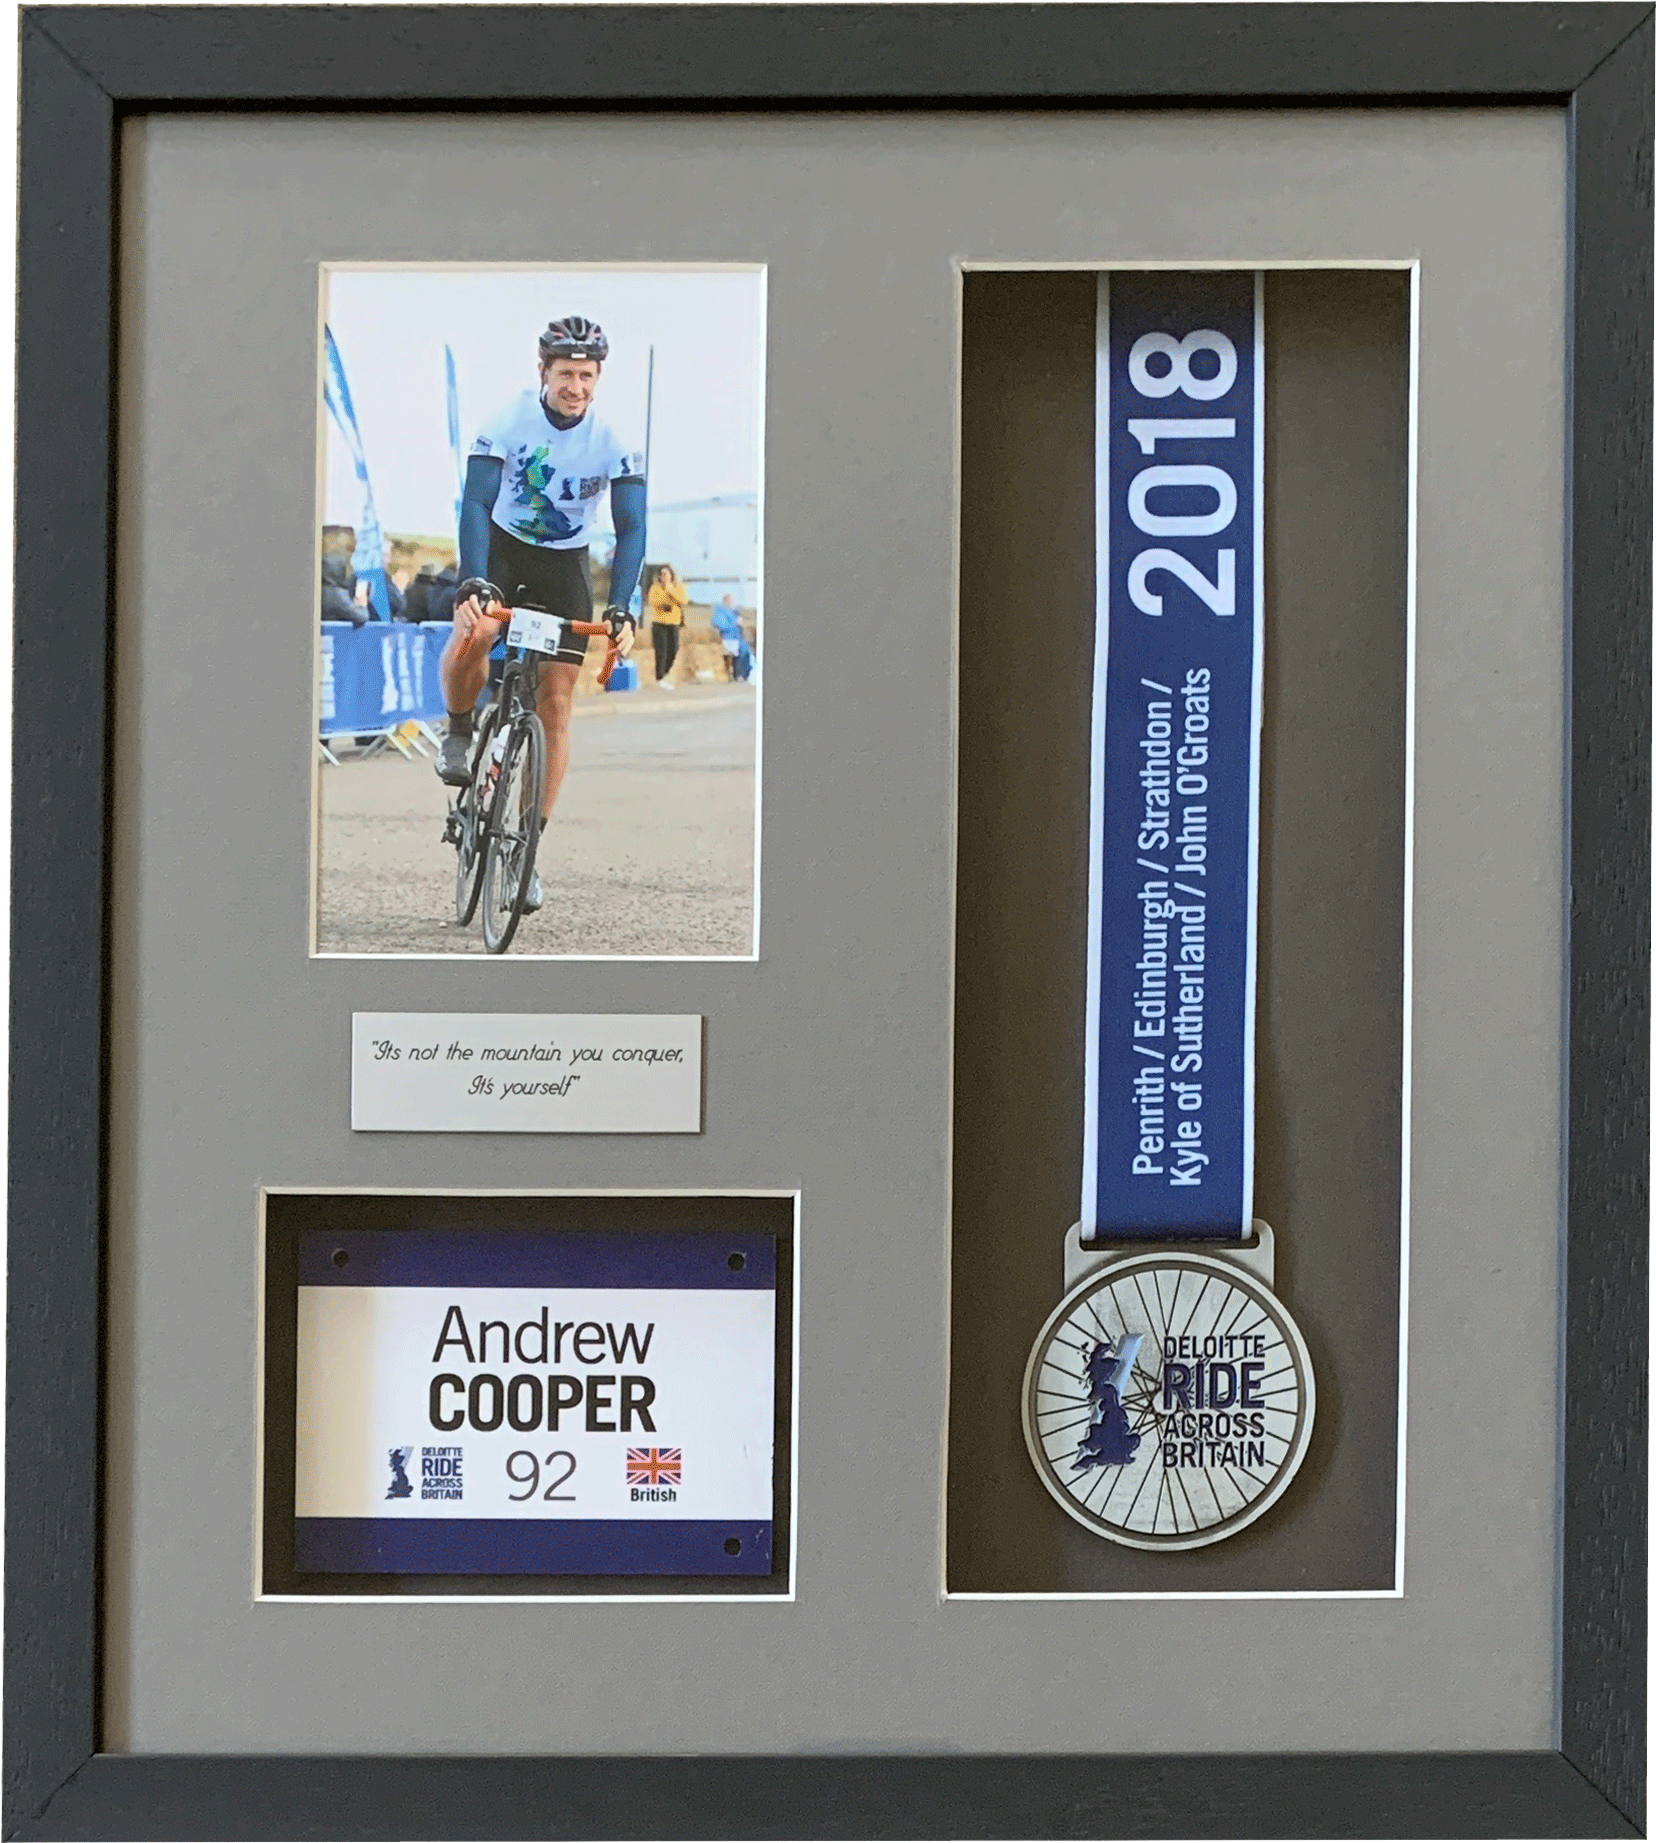 Sports Medal framed with photo